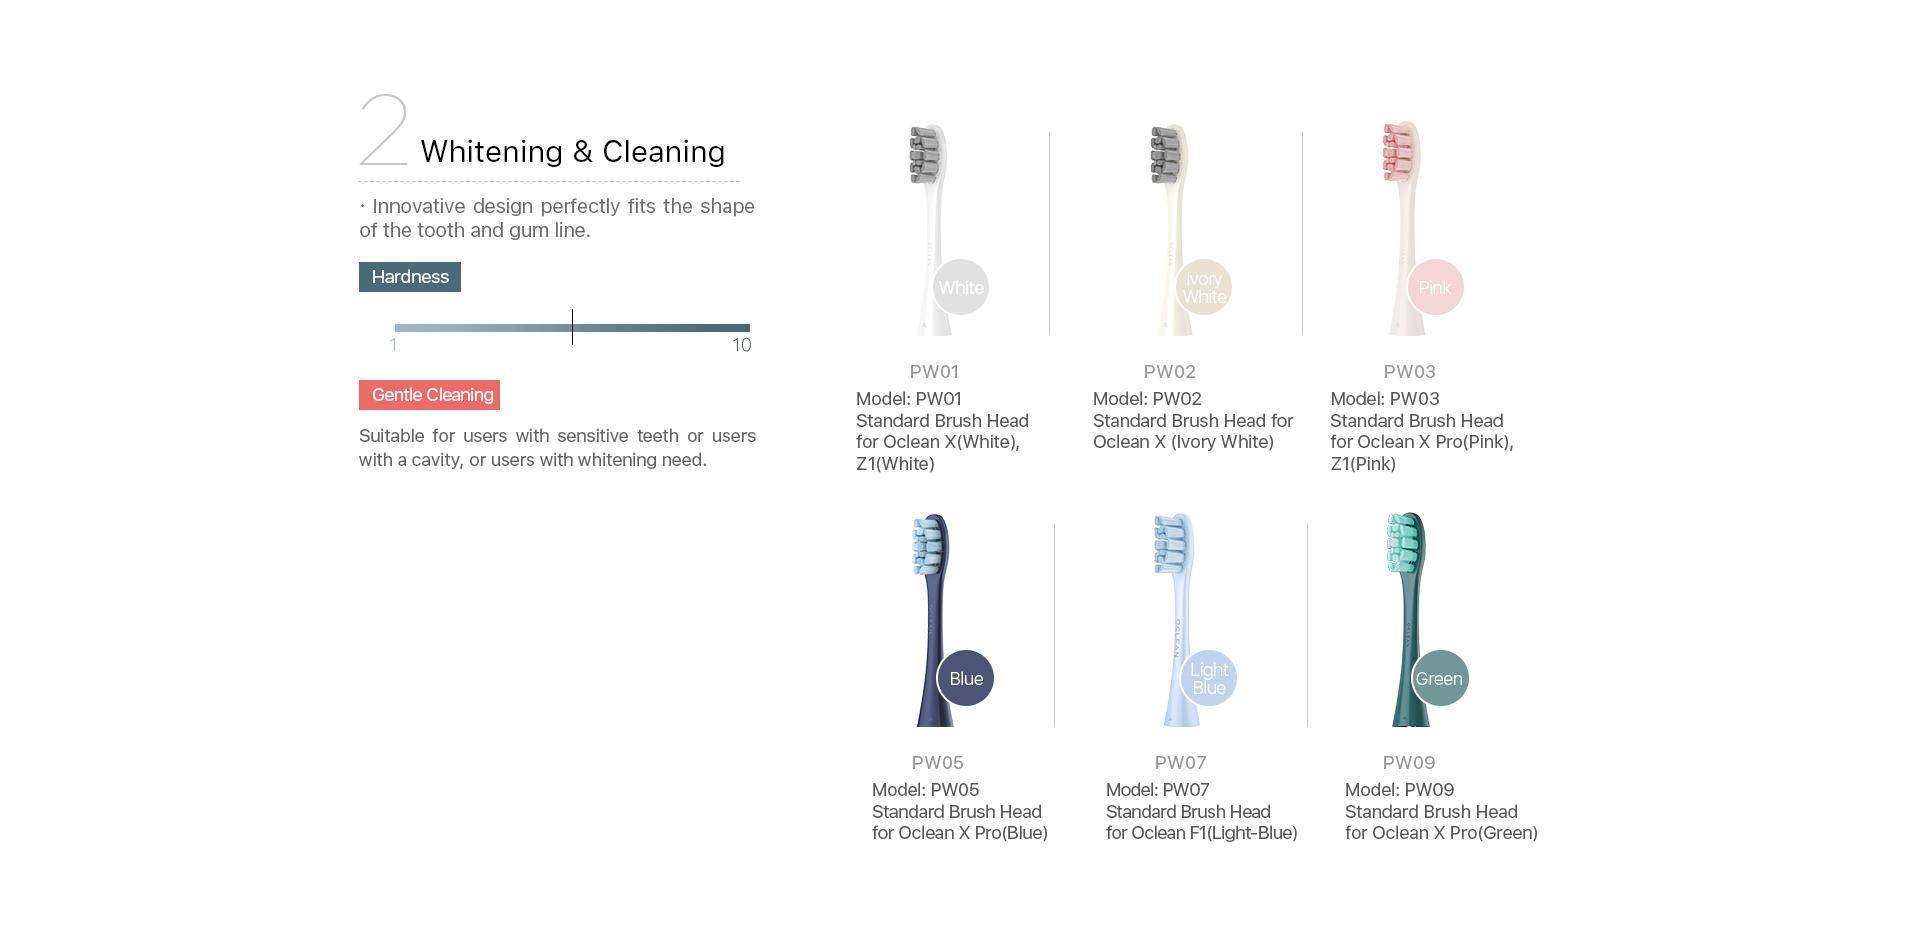 whitening and Cleaning